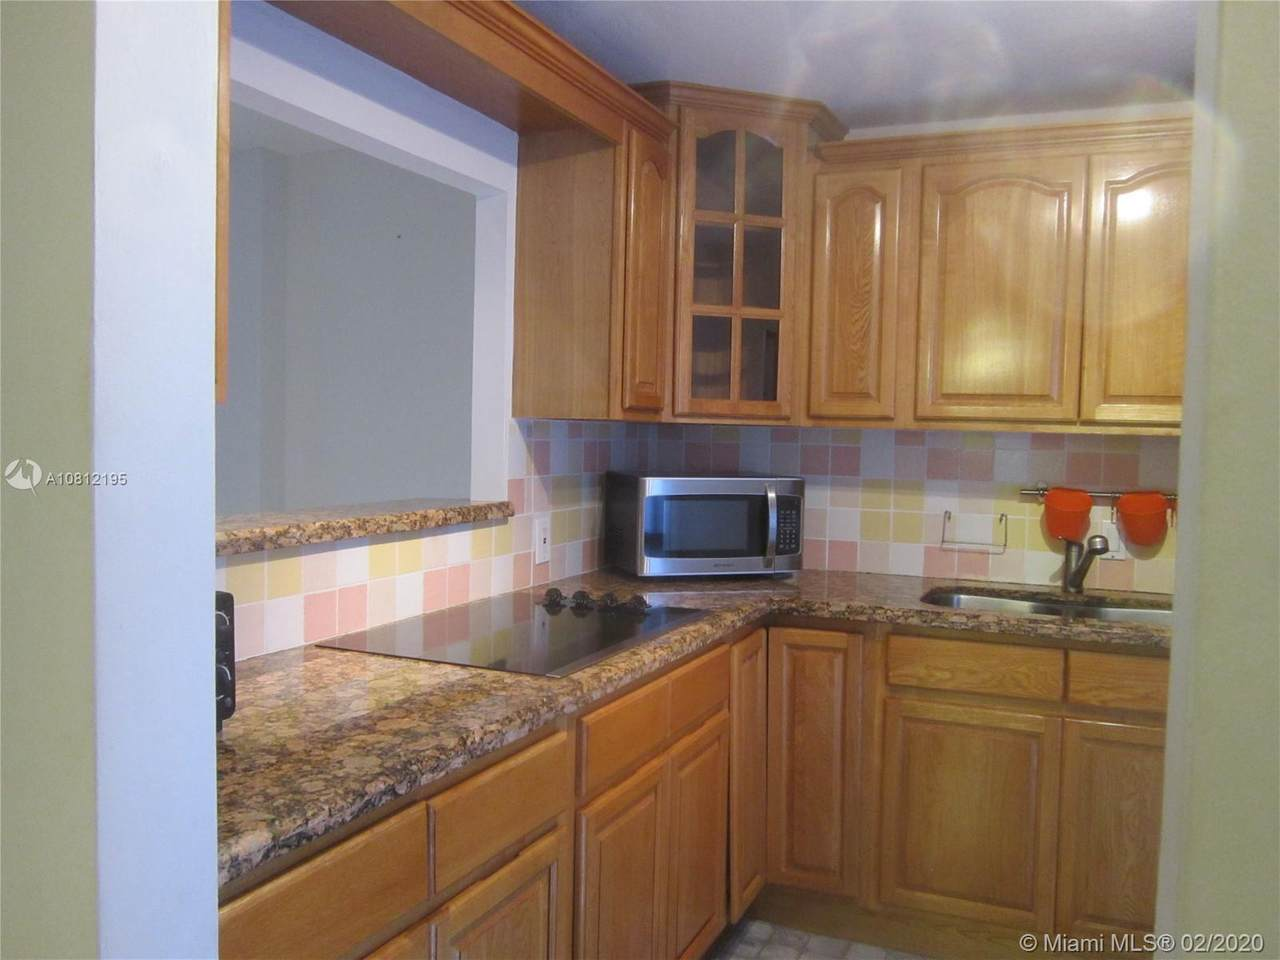 3475 Country Club Dr - Photo 1